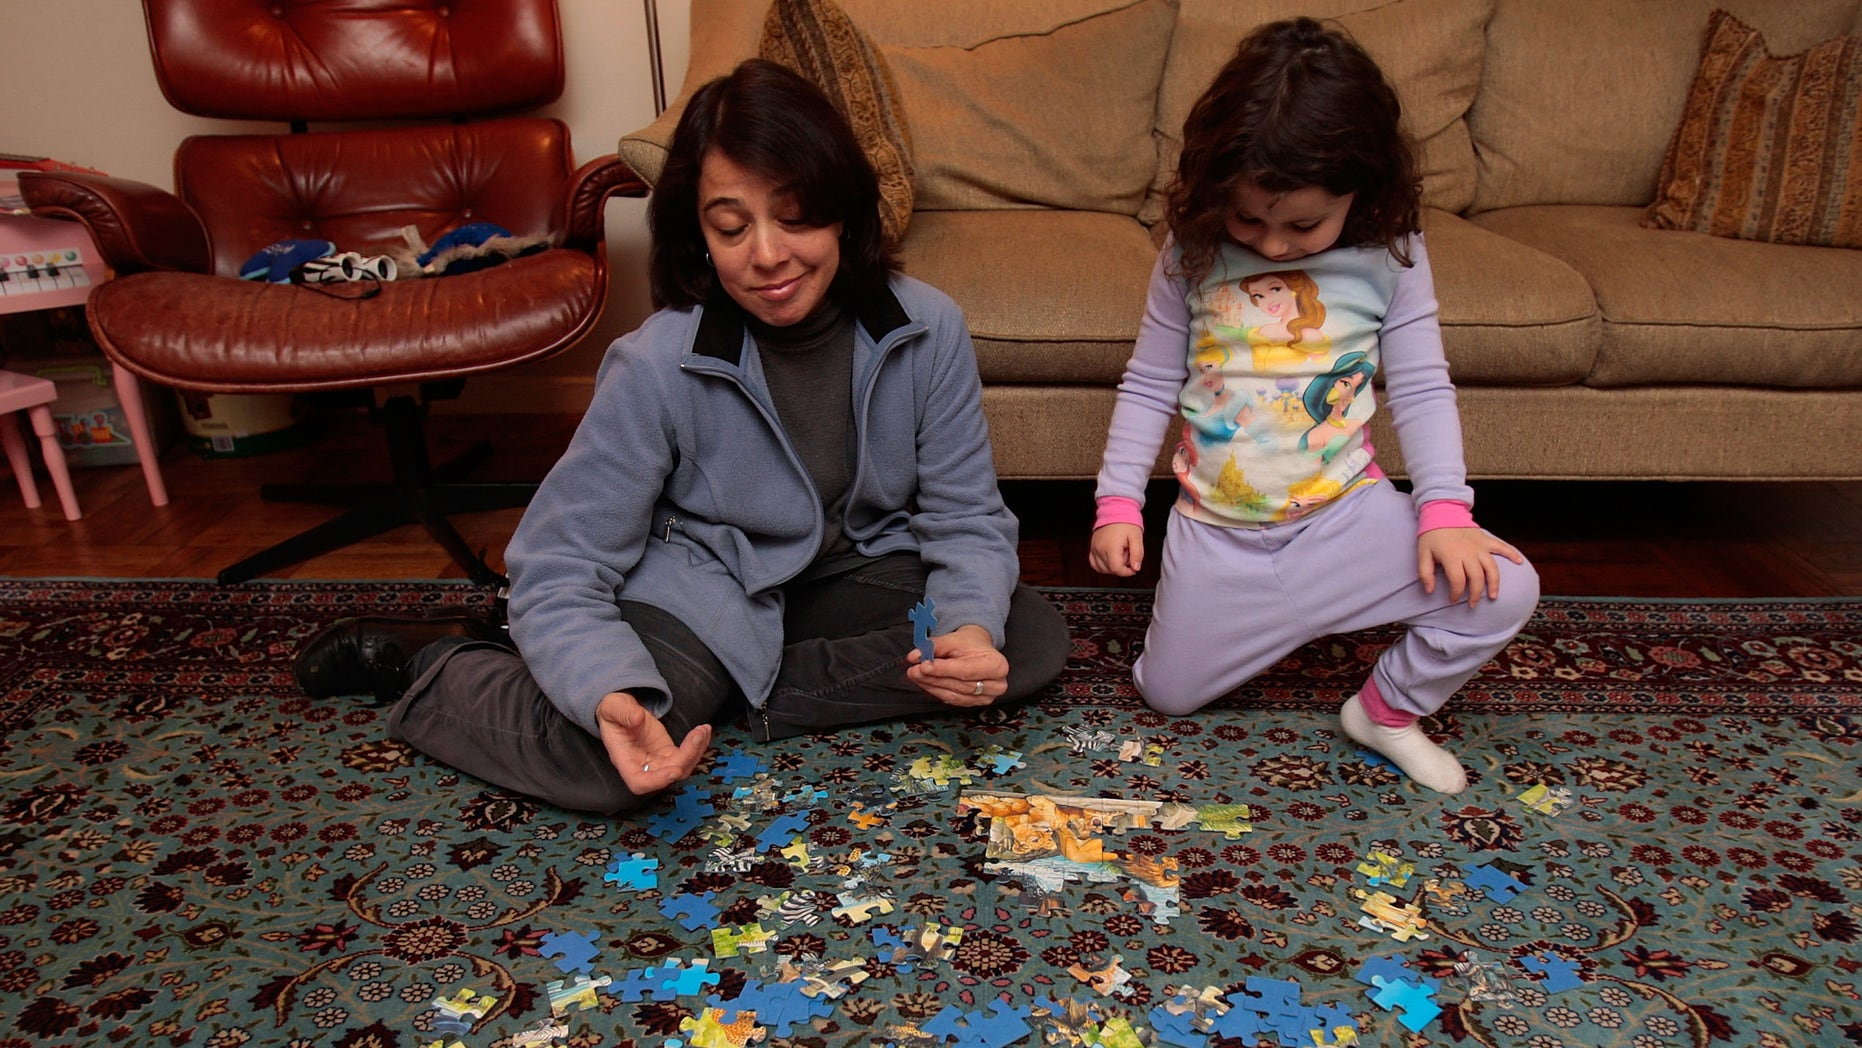 """NEW YORK - DECEMBER 11:  Jocelyn Taub, a job-hunting marketing professional, works on a puzzle with a three-year-old girl while babysitting for extra money December 11, 2008 in New York City.  Taub has worked in the music promotion and radio business her whole career, but was let go from her job 10 months ago and has been job searching ever since.  To make ends meet, she's been working odd jobs in offices for friends and is doing some babysitting. """"I've seen downturns before, but it's never been like this,"""" she says.  (Photo by Chris Hondros/Getty Images)"""